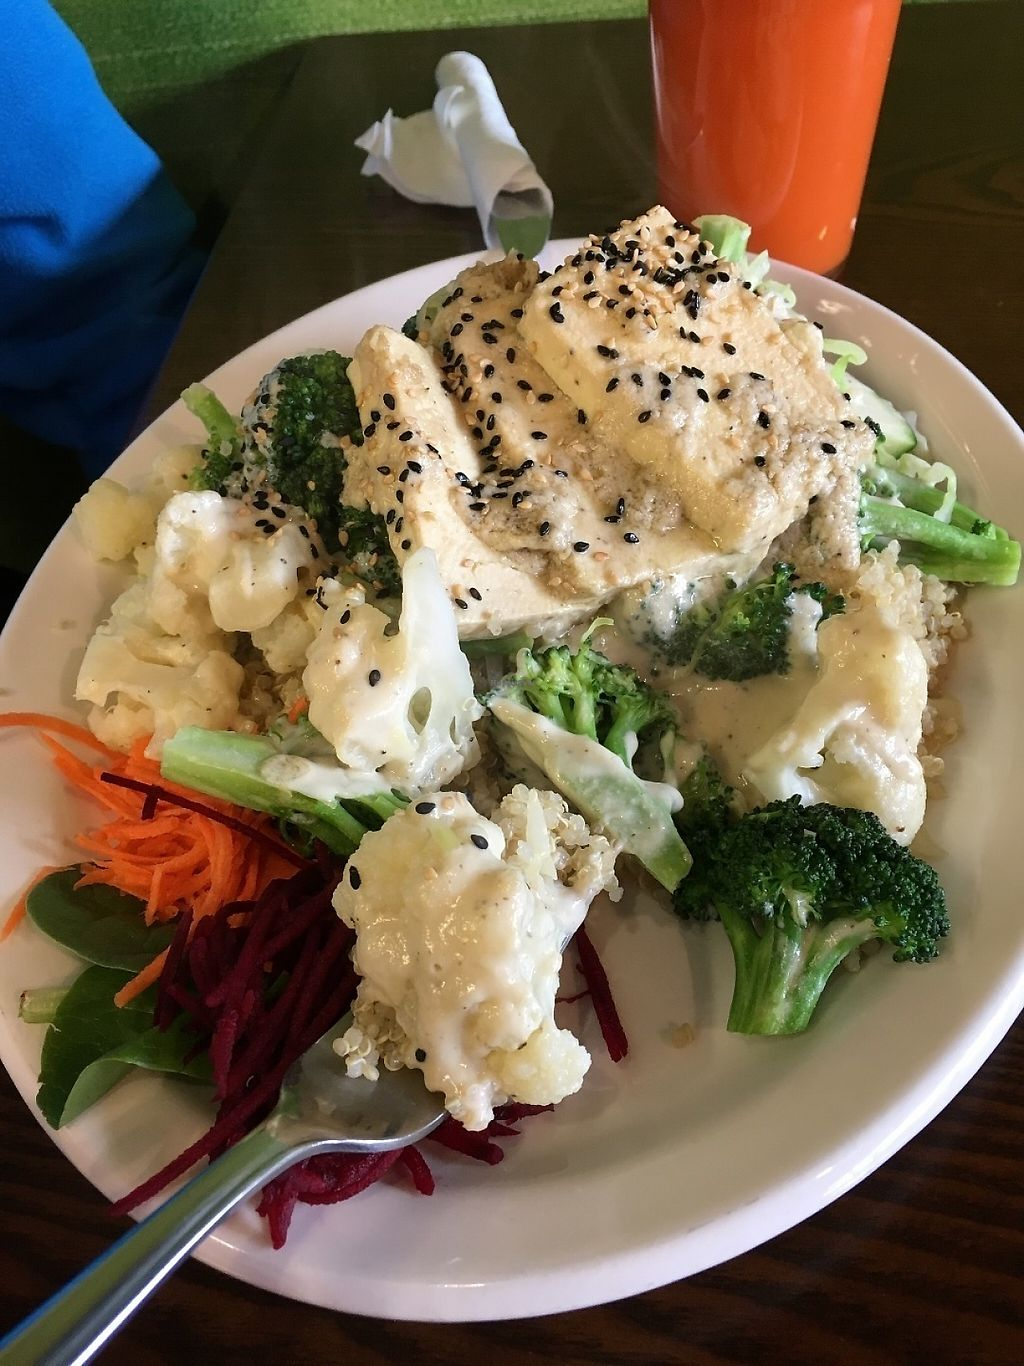 """Photo of Sejuiced  by <a href=""""/members/profile/vegan%20frog"""">vegan frog</a> <br/>Quinoa bowl with Gf option sauce <br/> May 20, 2017  - <a href='/contact/abuse/image/4451/260721'>Report</a>"""